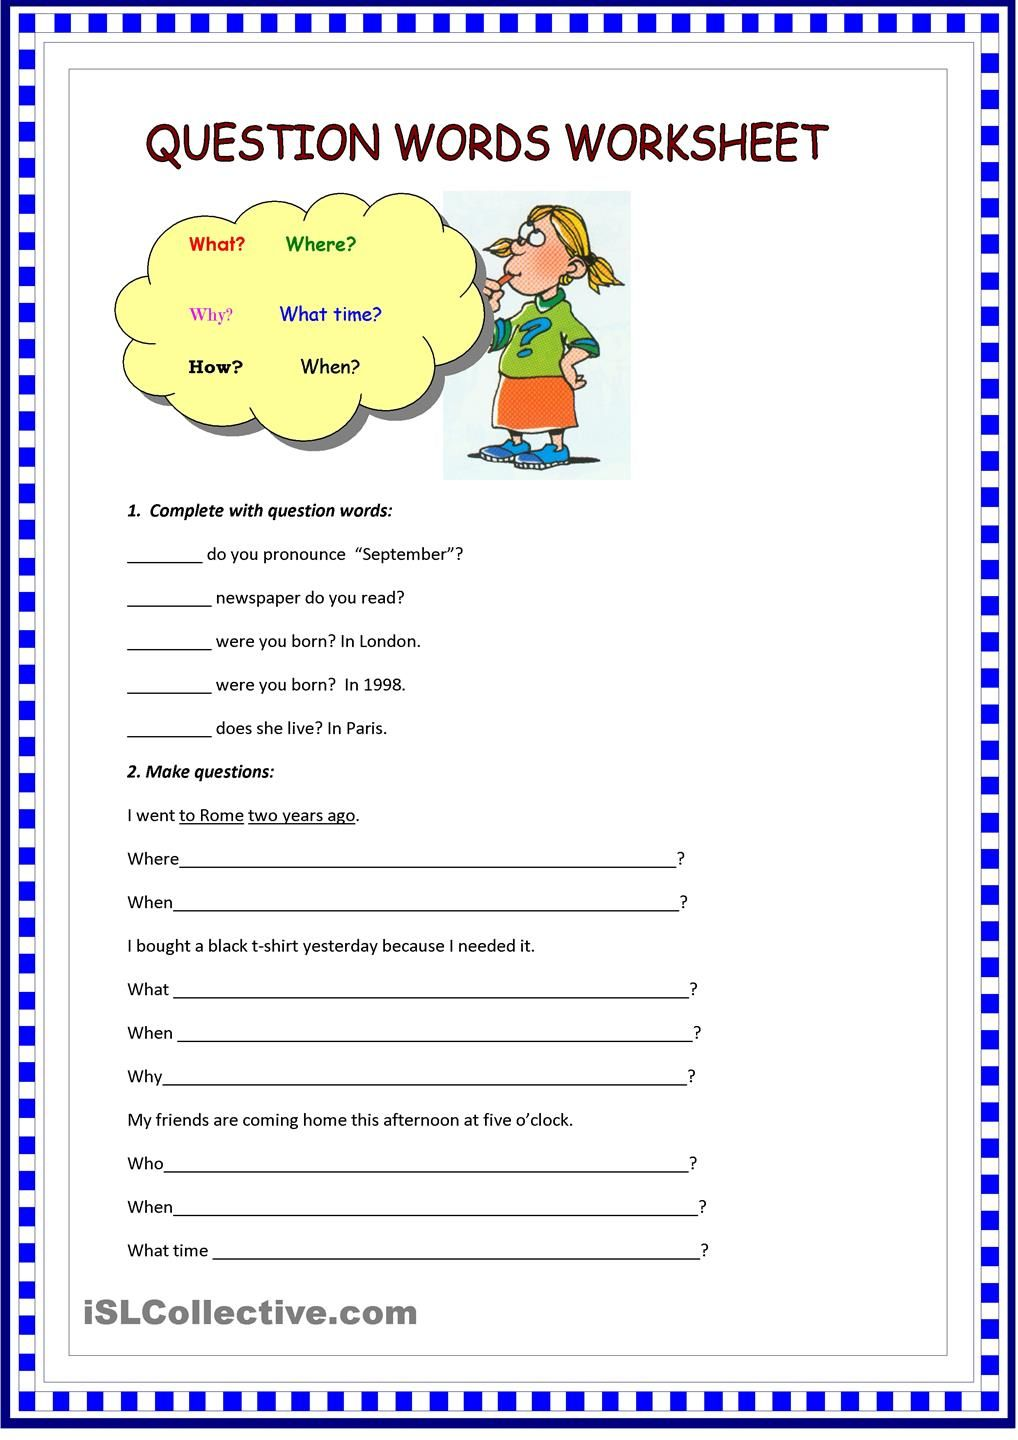 question words worksheet teaching 2nd grade pinterest worksheets english and teaching. Black Bedroom Furniture Sets. Home Design Ideas